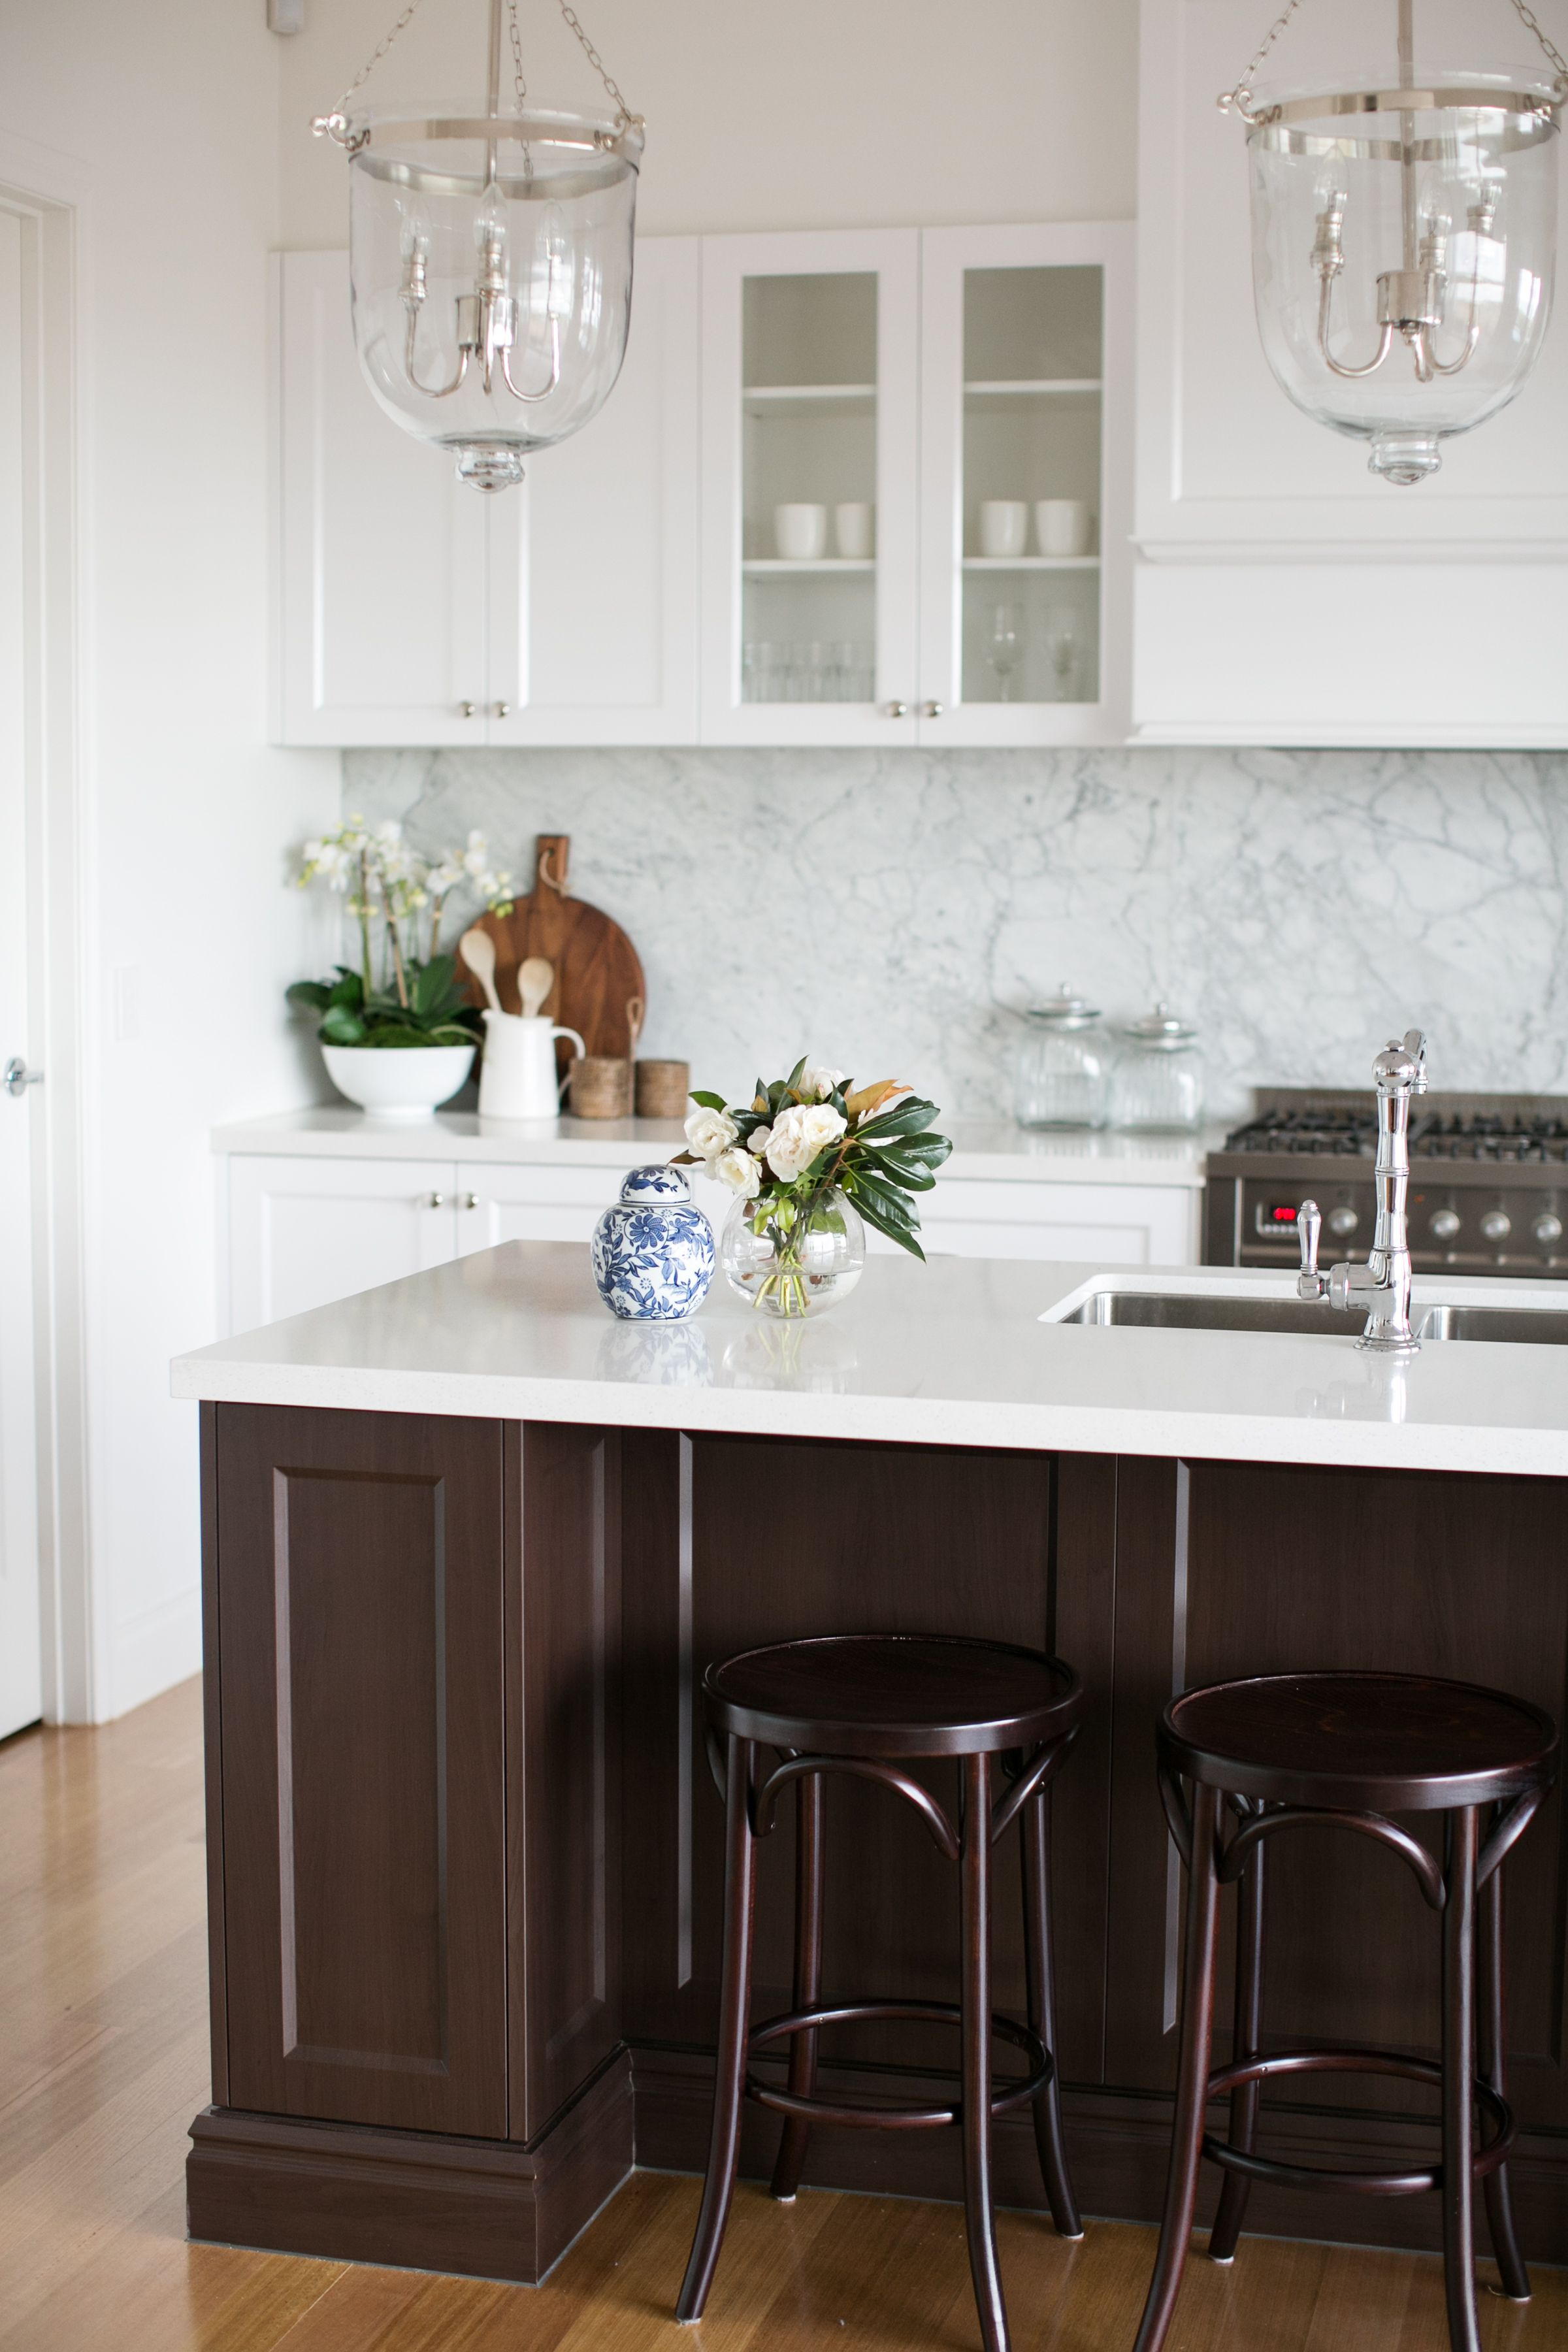 Hampton Style Kitchen Designs Captivating If You Love Hamptons Style Mixed With Clean & Contemporary Review